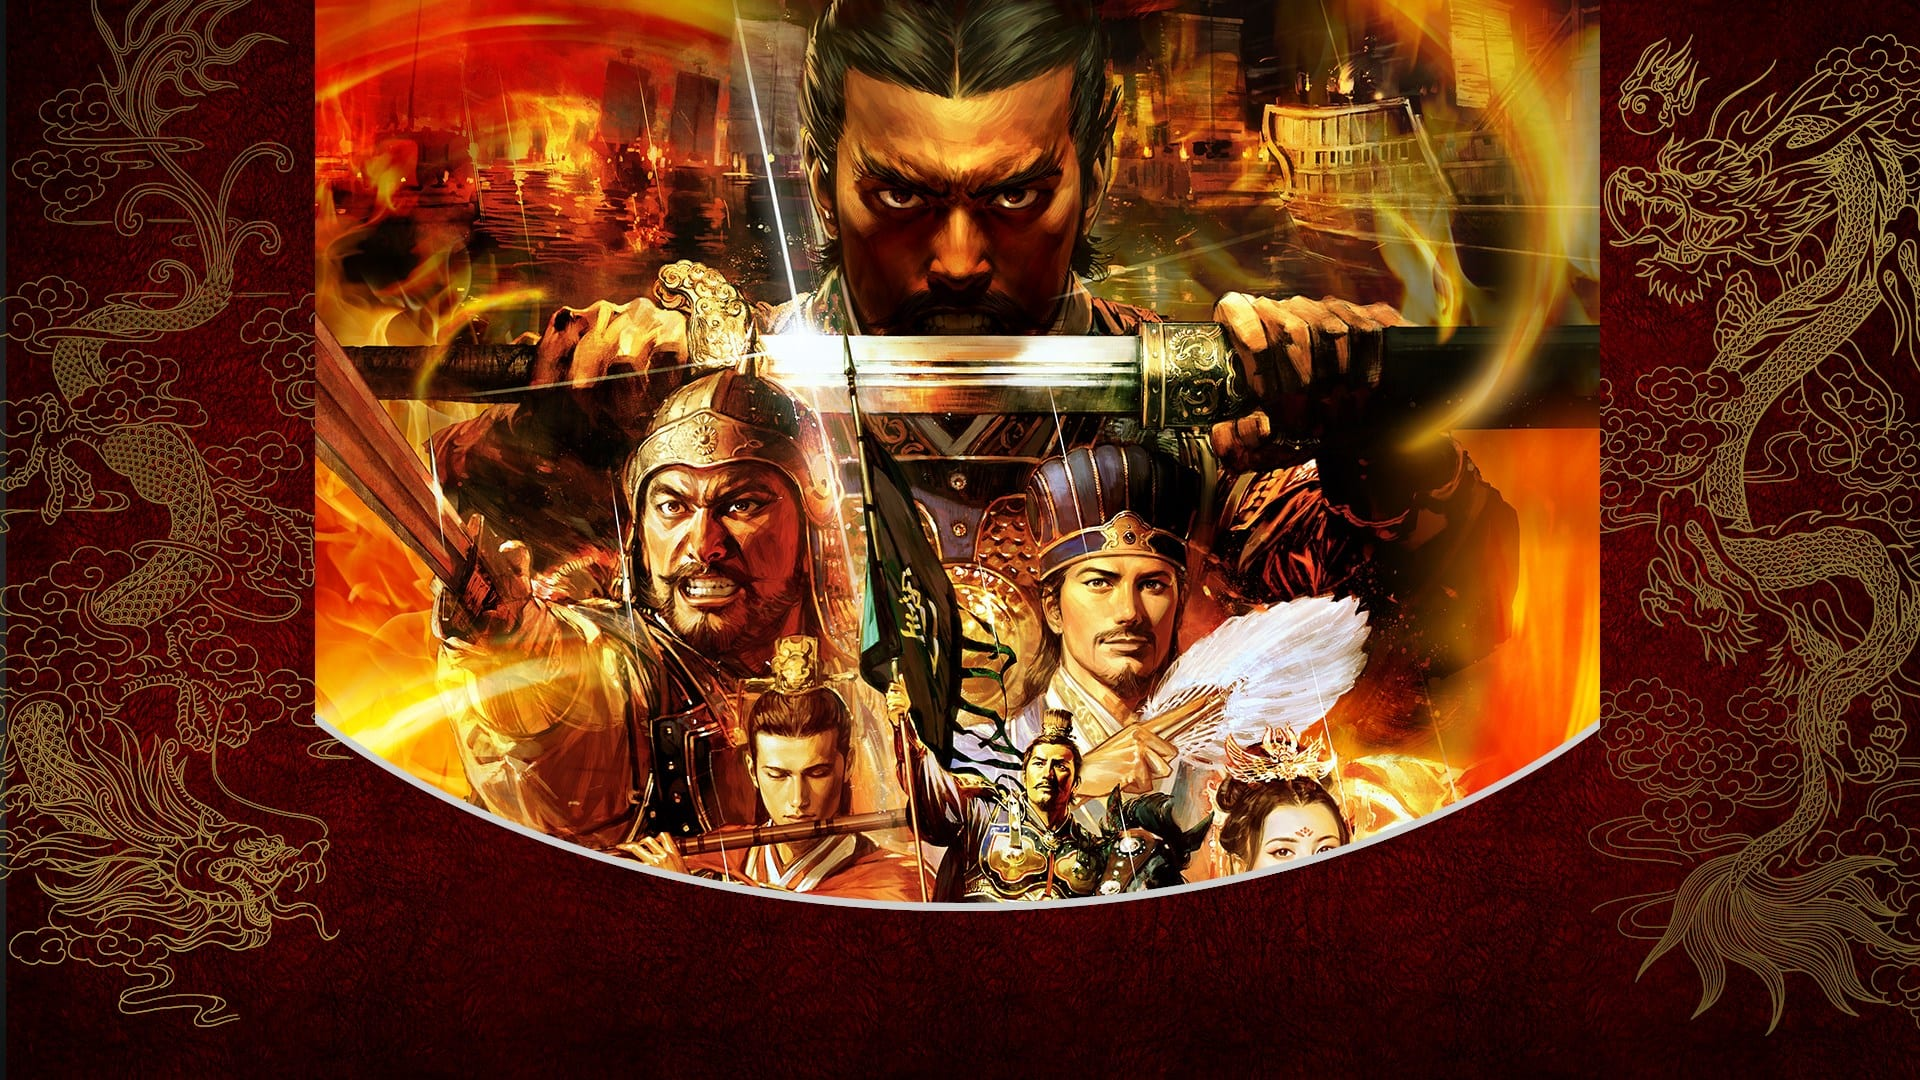 Romance of the Three Kingdoms XIV Critic Review